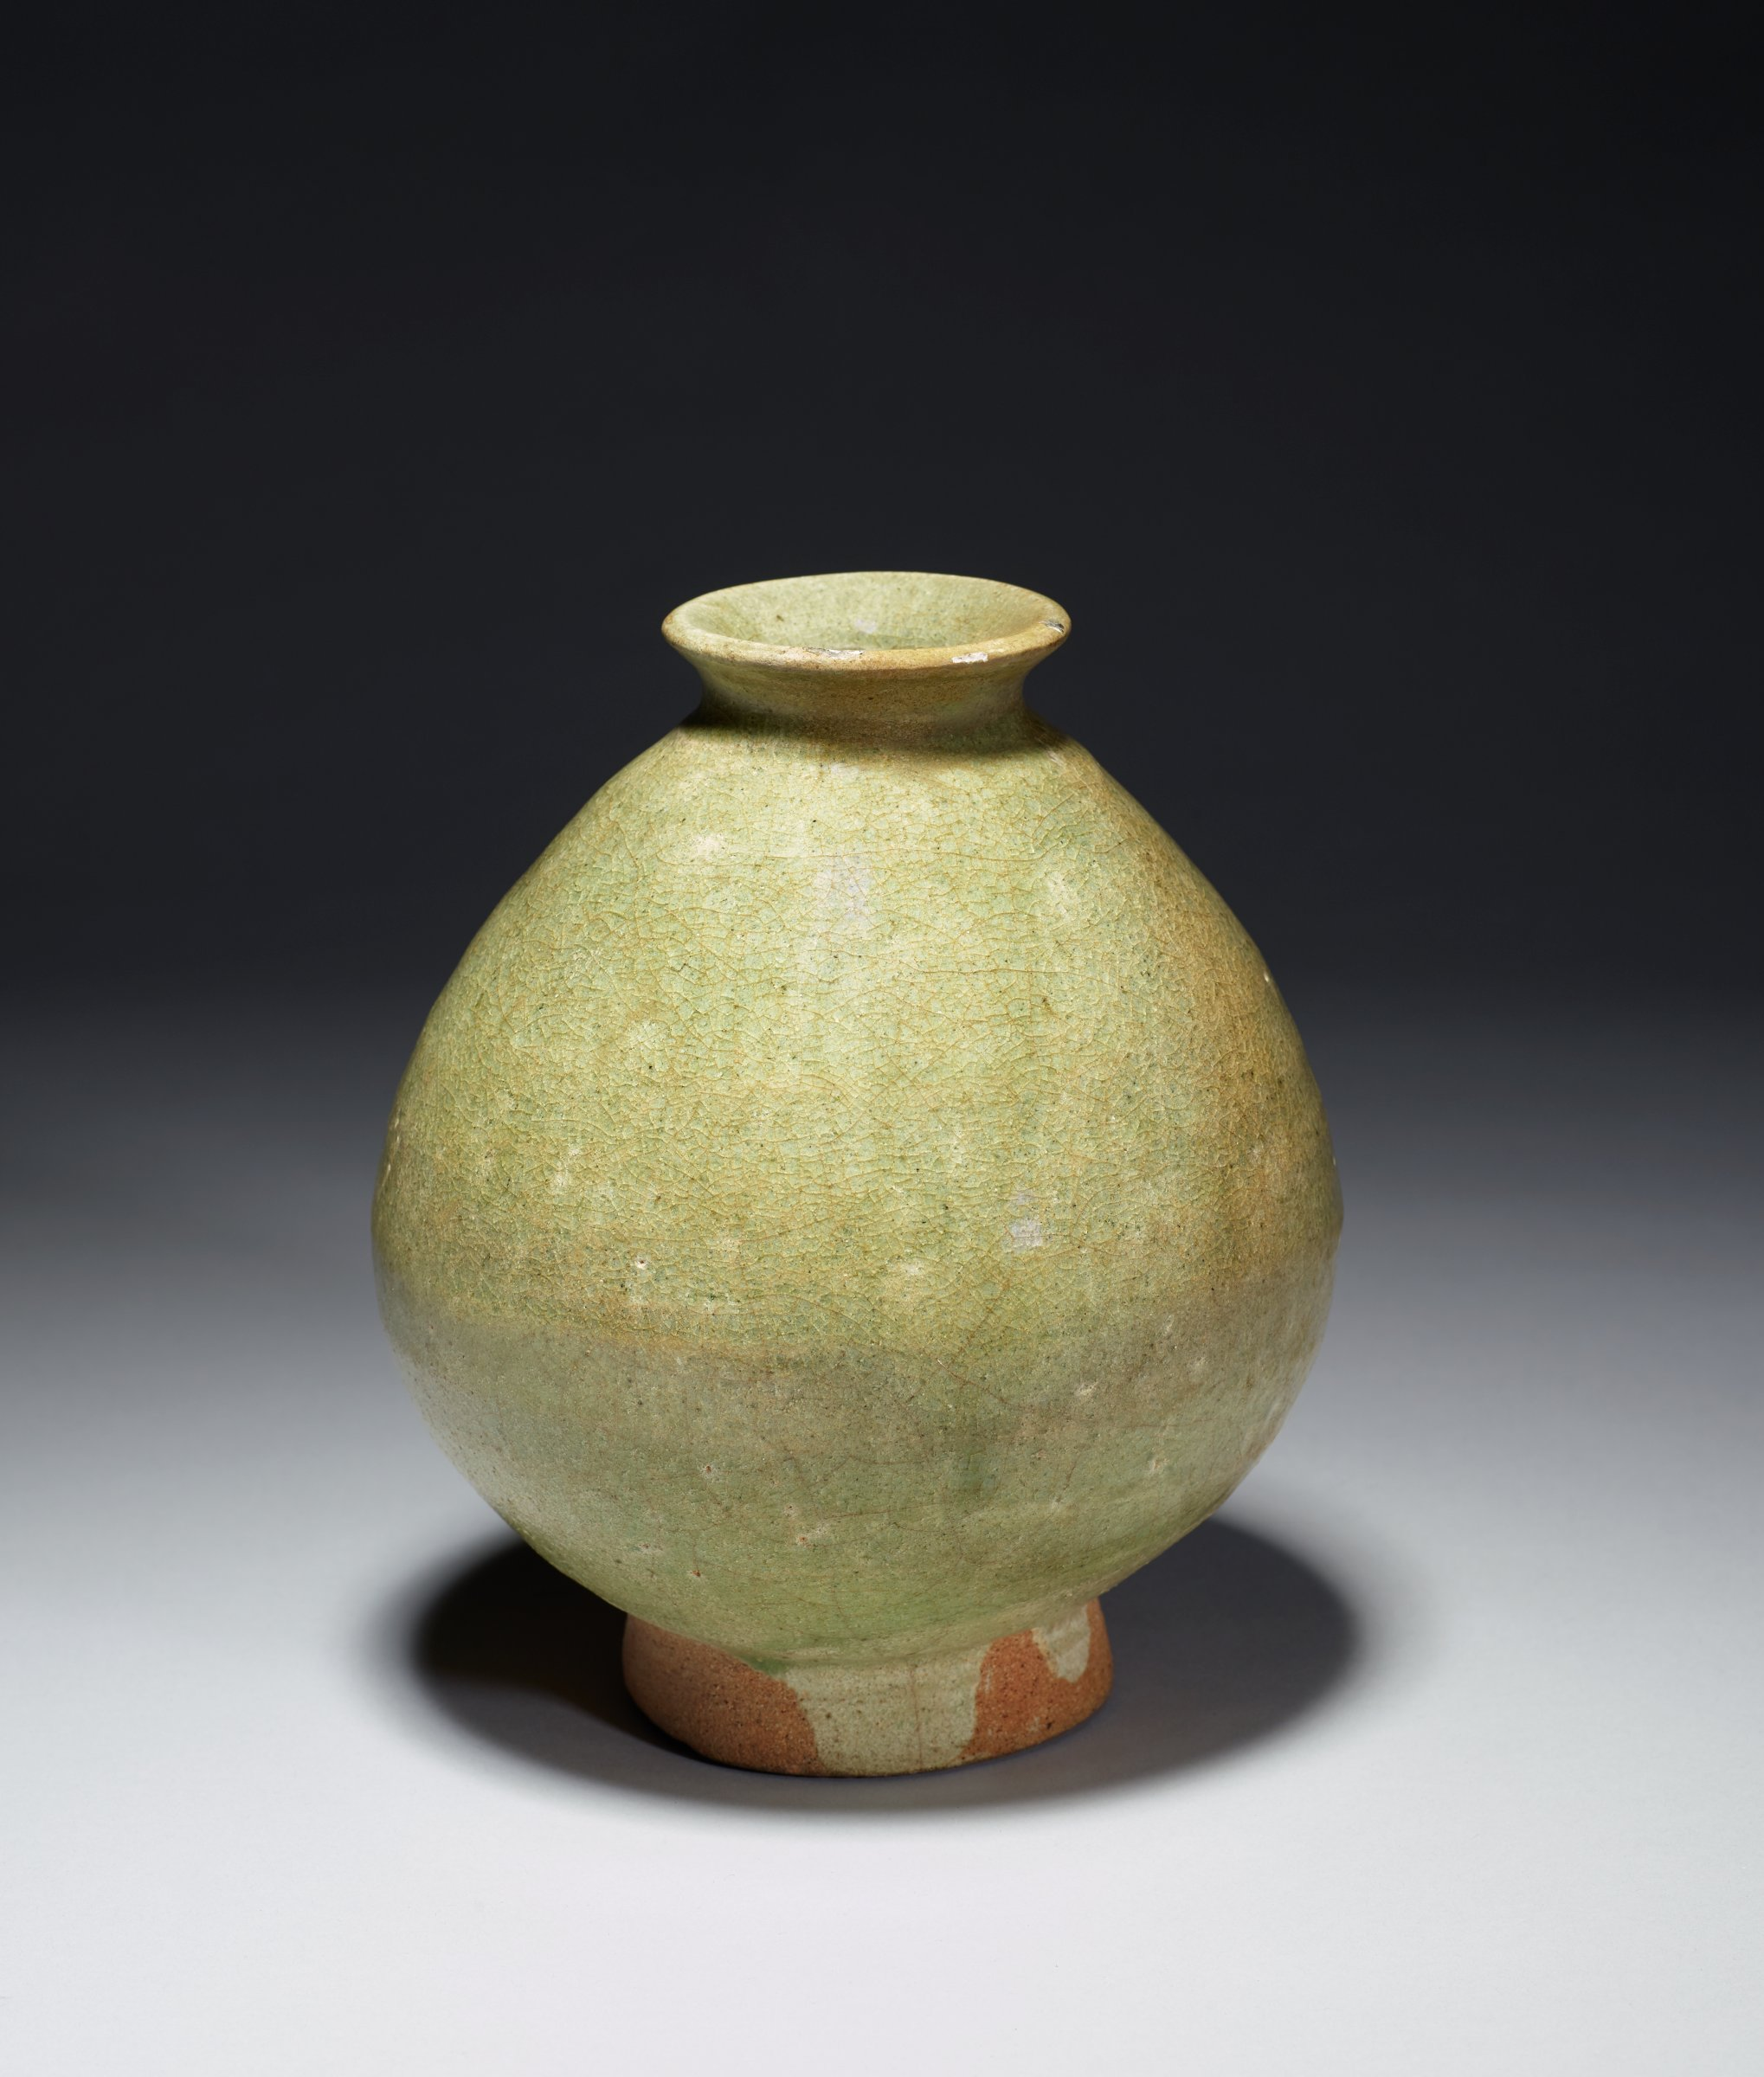 Bottle with plain straw-colored glaze.